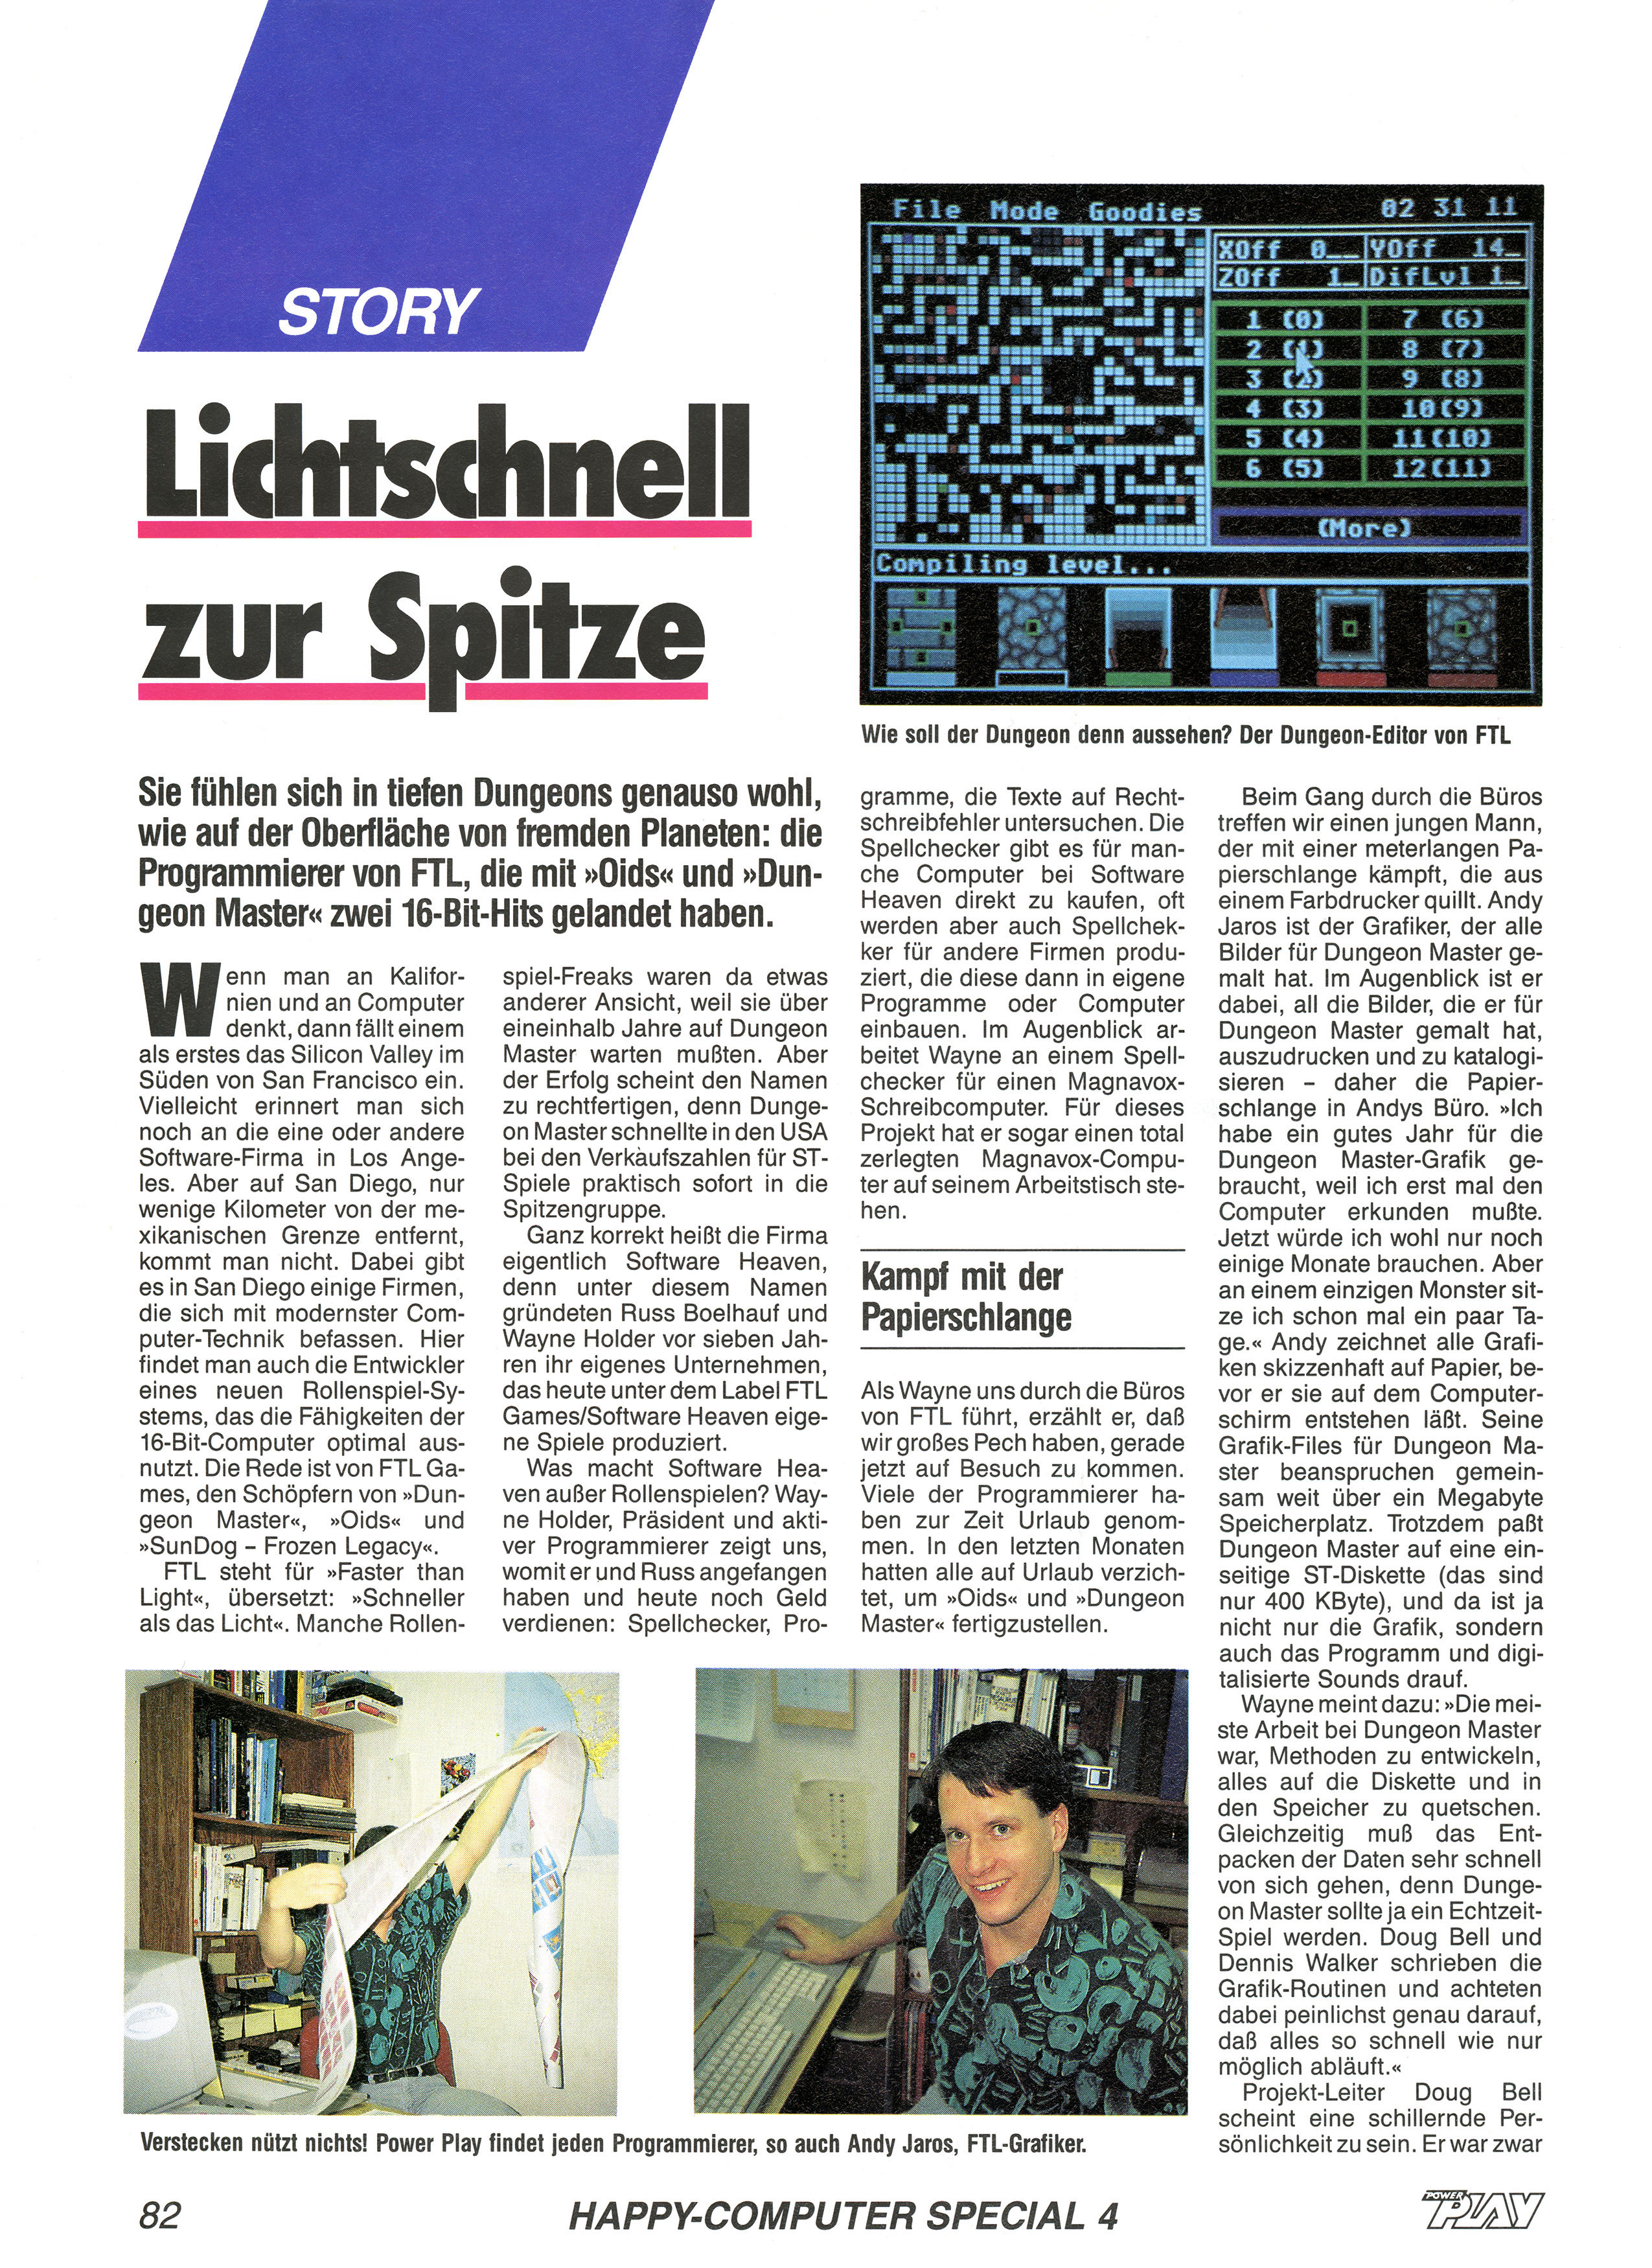 FTL Article published in German magazine 'Power Play', April 1988, Page 82